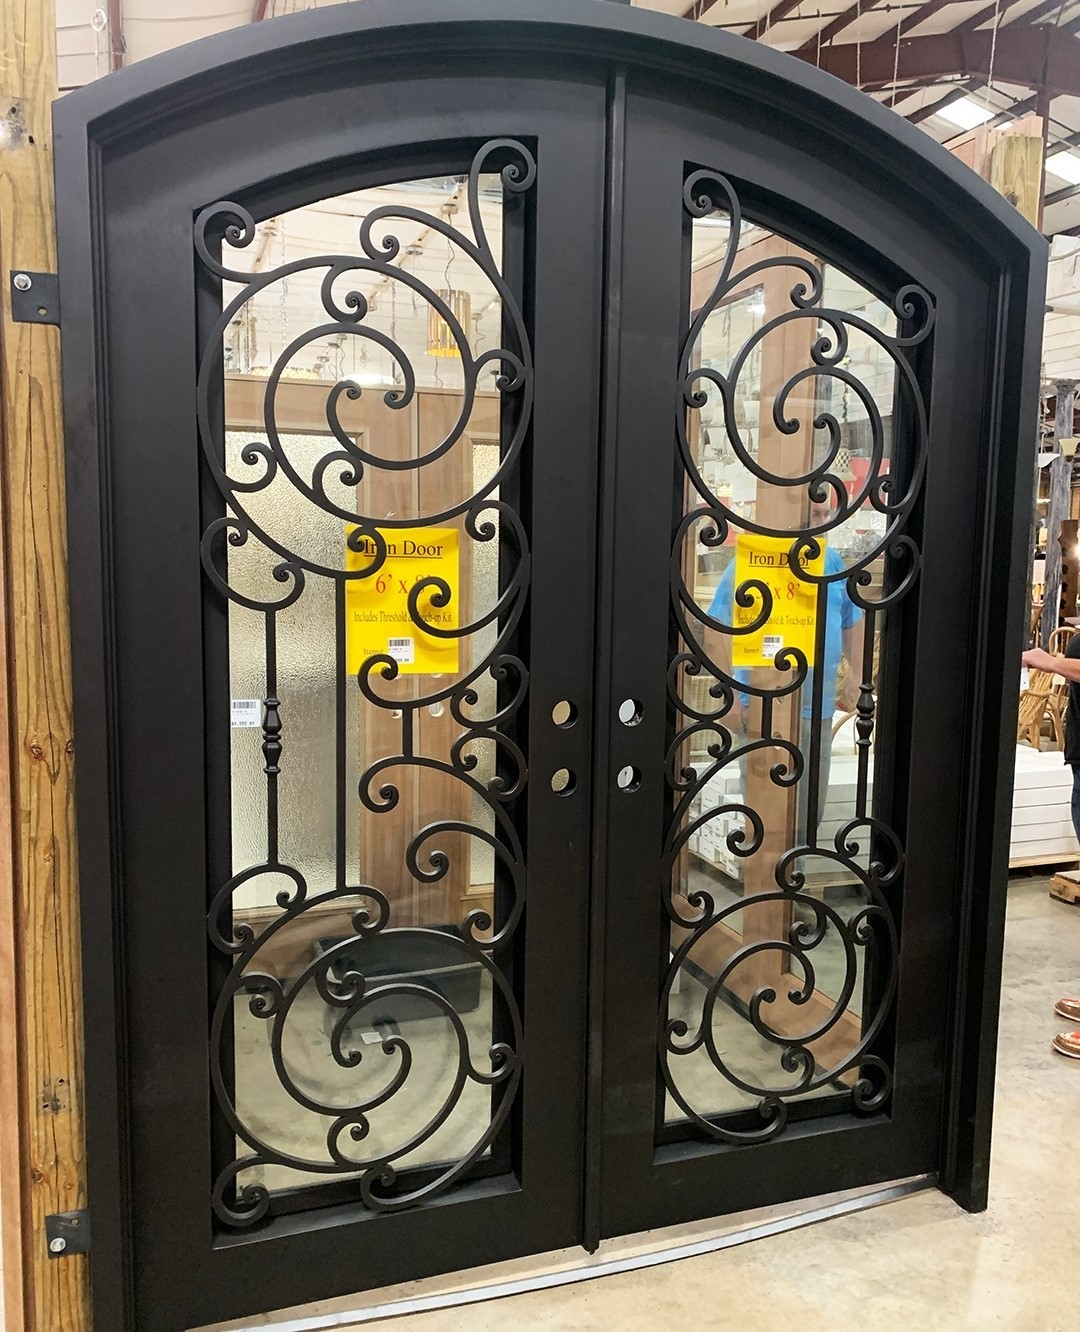 Iron Scroll Entry Doors are available at our Chesapeake, Chattanooga, Columbia, Birmingham, and Knoxville locations.